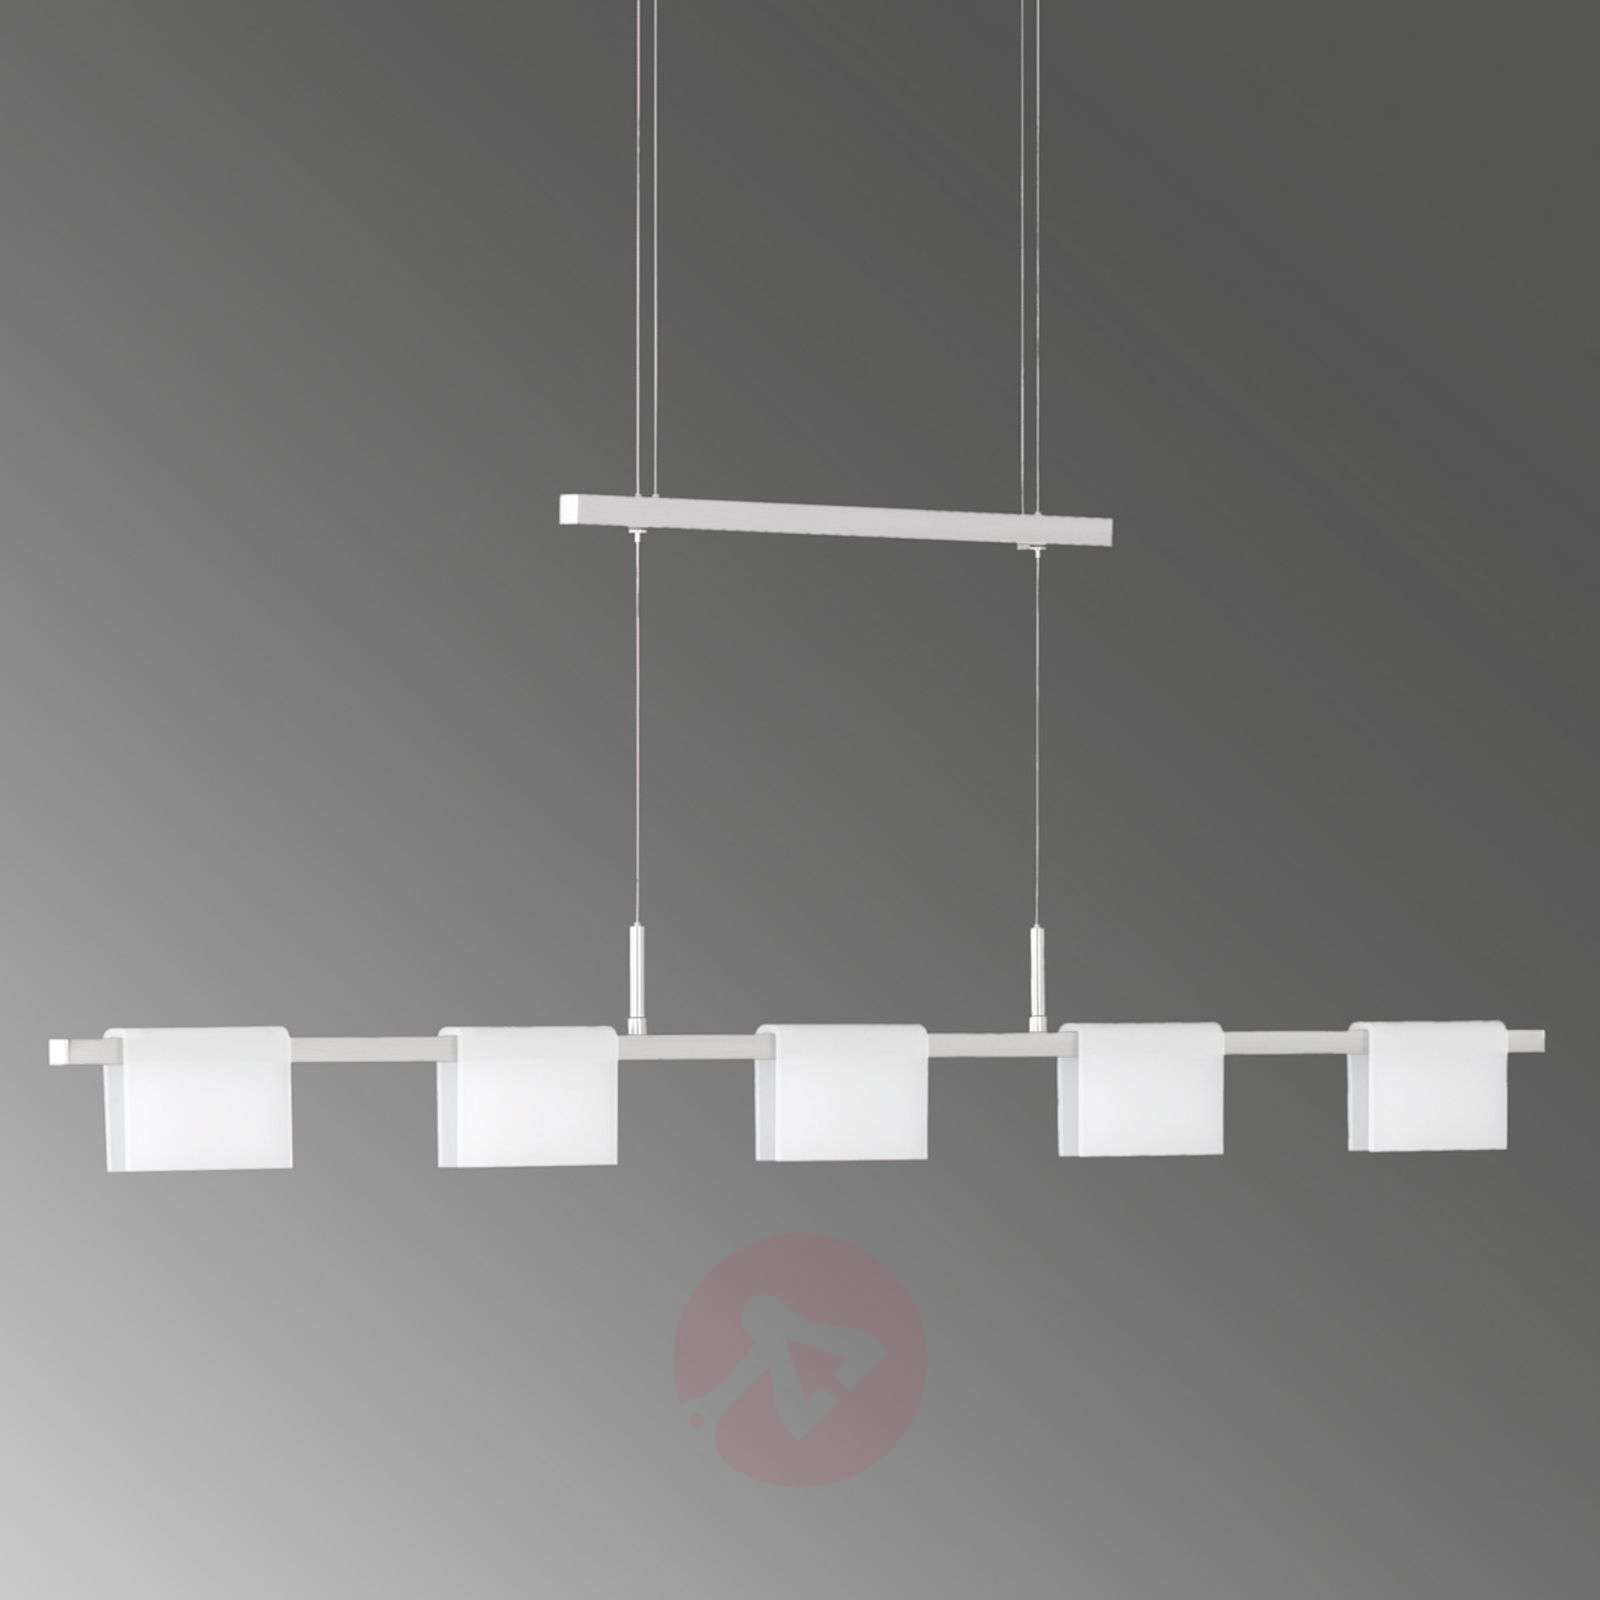 Dimbare LED-hanglamp Lienzo in hoogte verstelb.-4581052-01